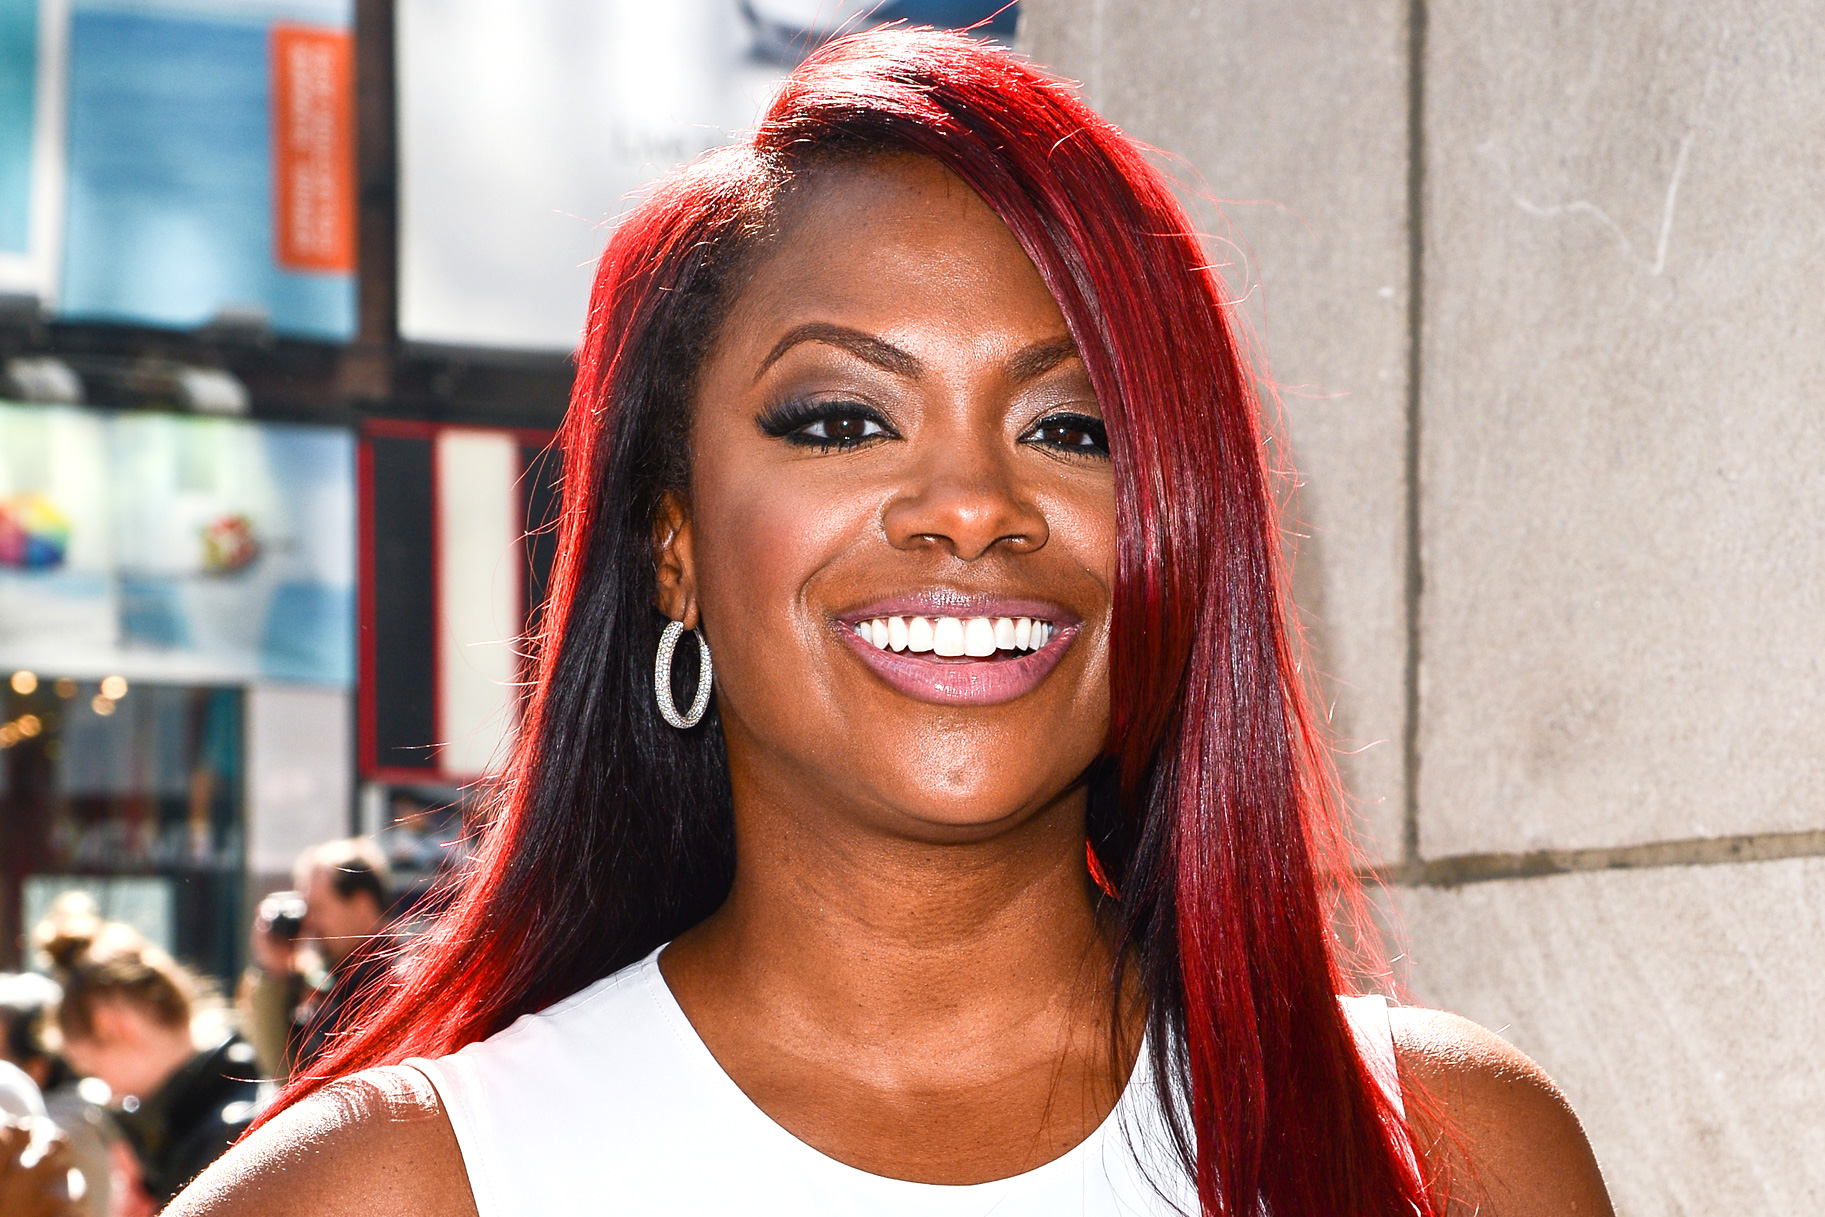 """kandi-burruss-latest-photo-with-riley-burruss-next-to-a-graphic-representation-of-snoop-dogg-has-fans-saying-she-should-collab-with-the-rapper"""